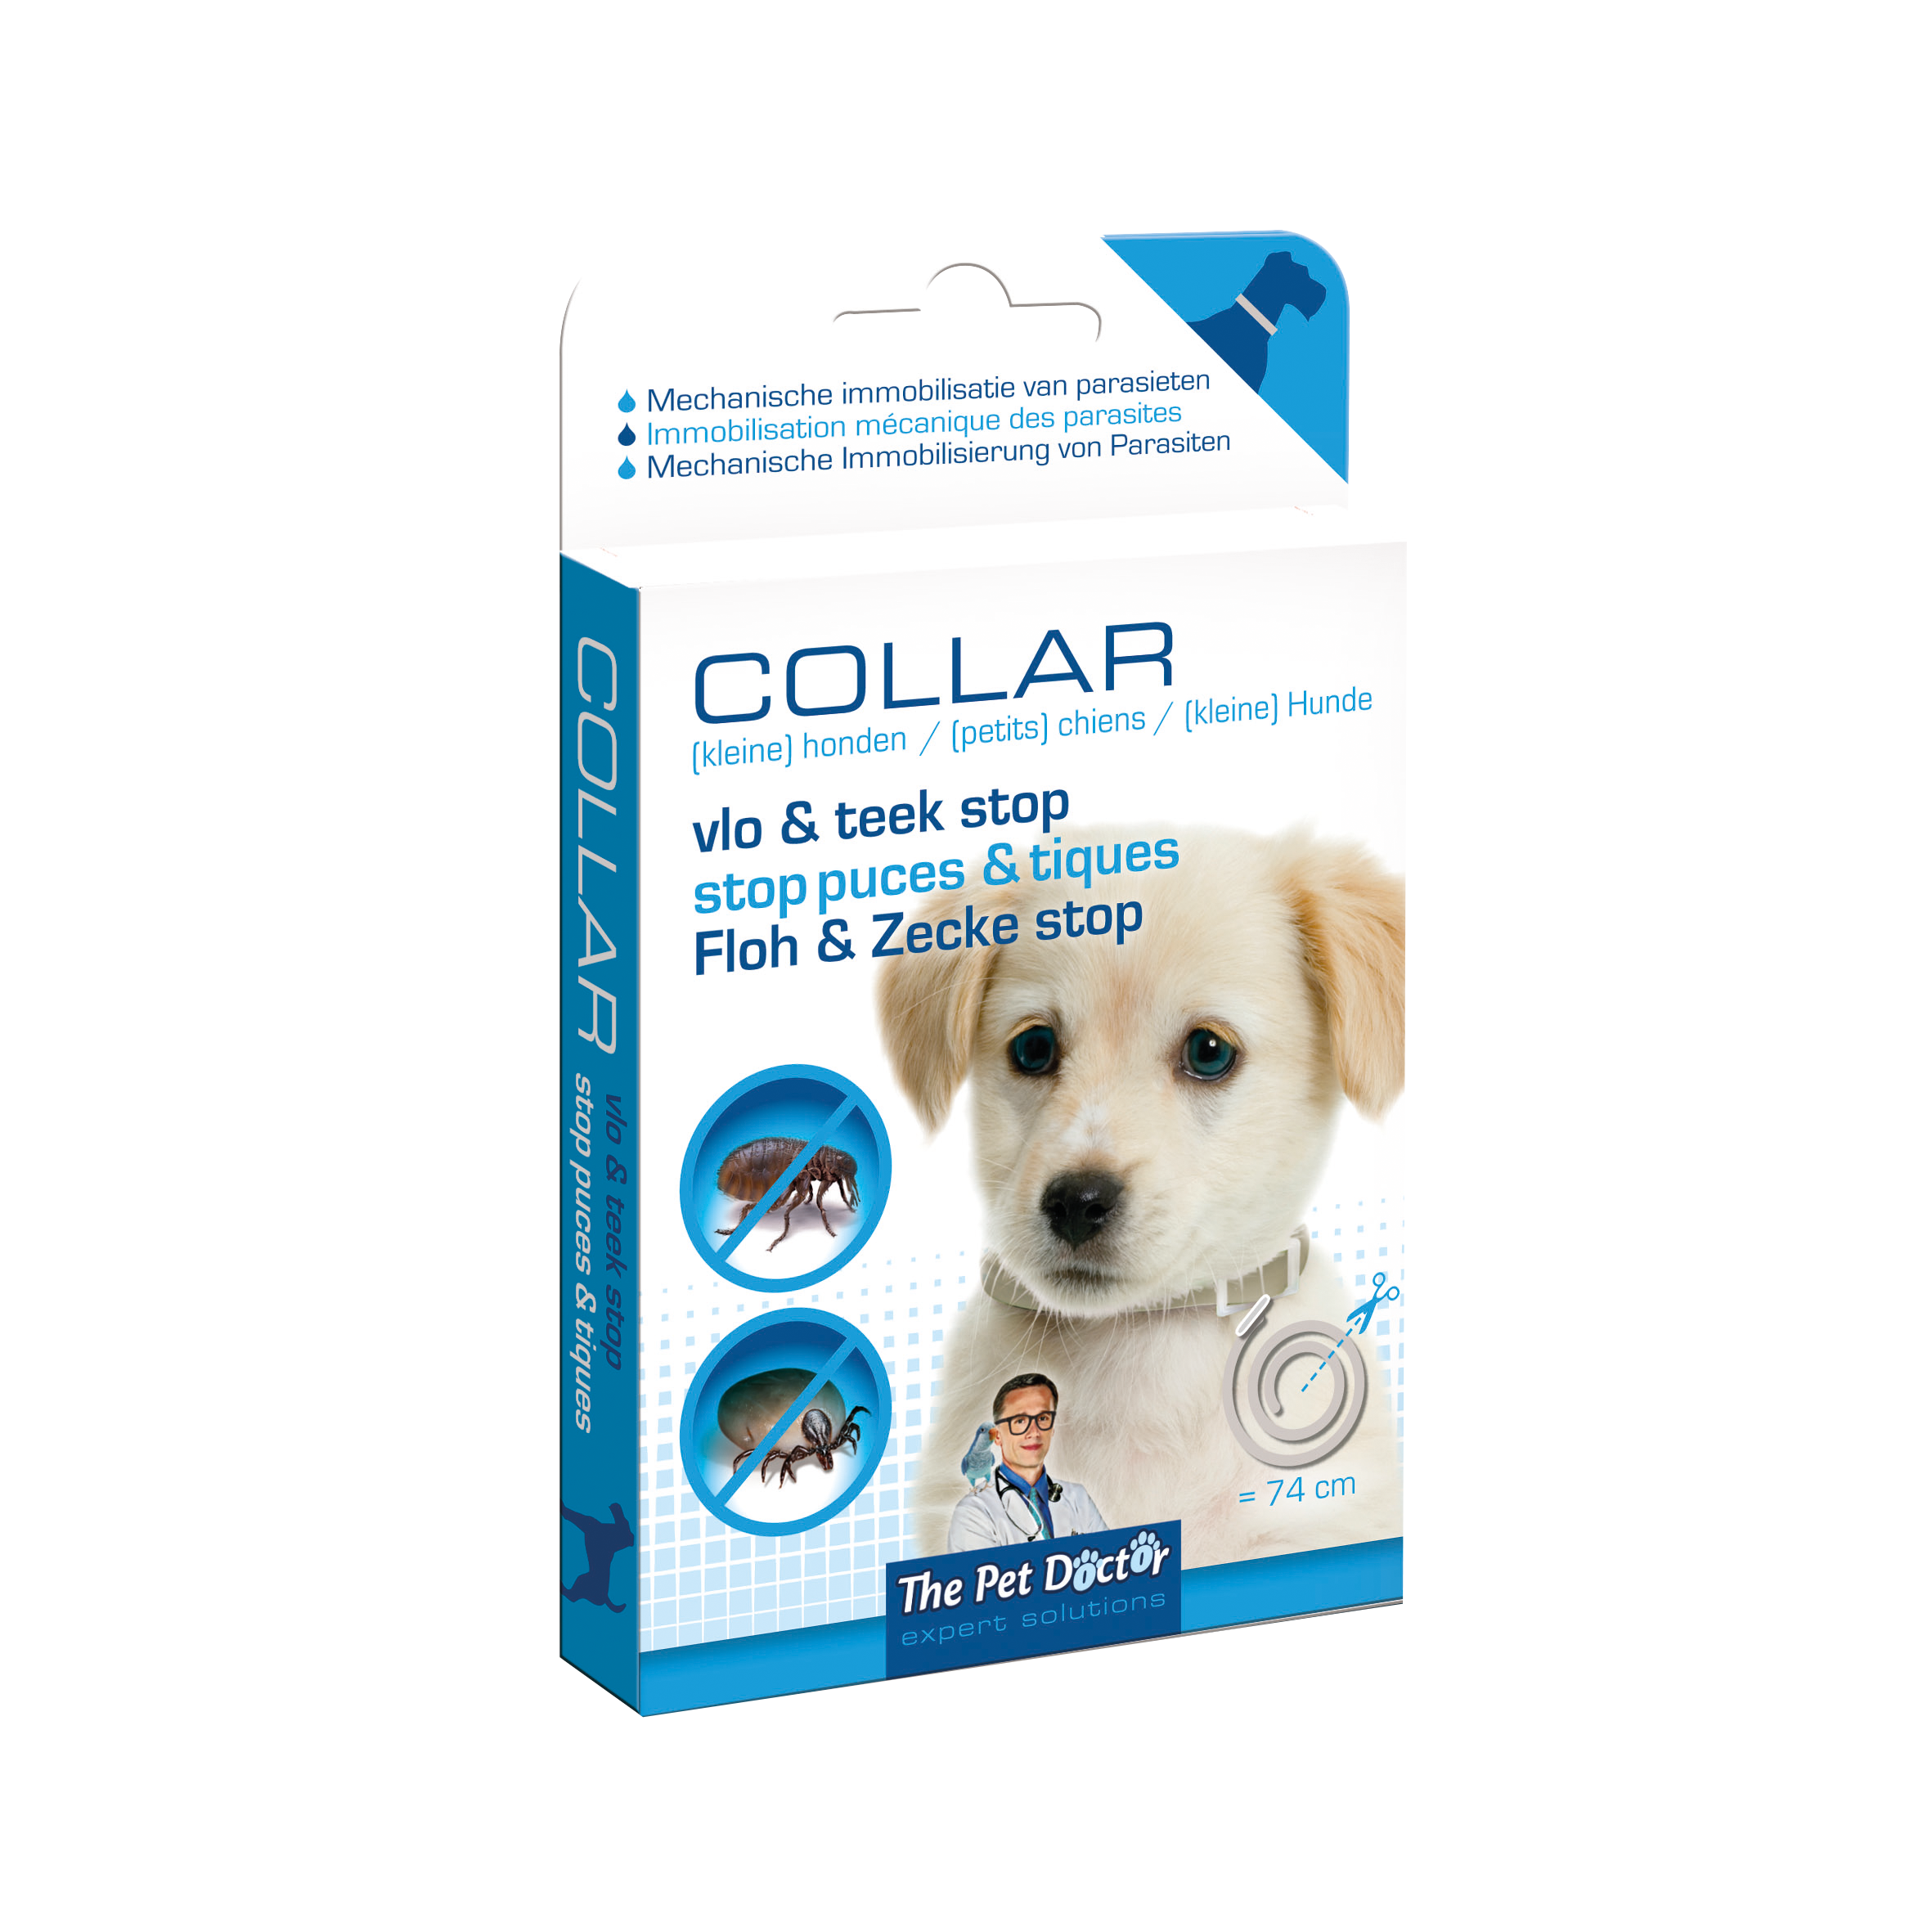 The Pet Doctor Vlo & Teek Stop Halsband Hond 74 cm image